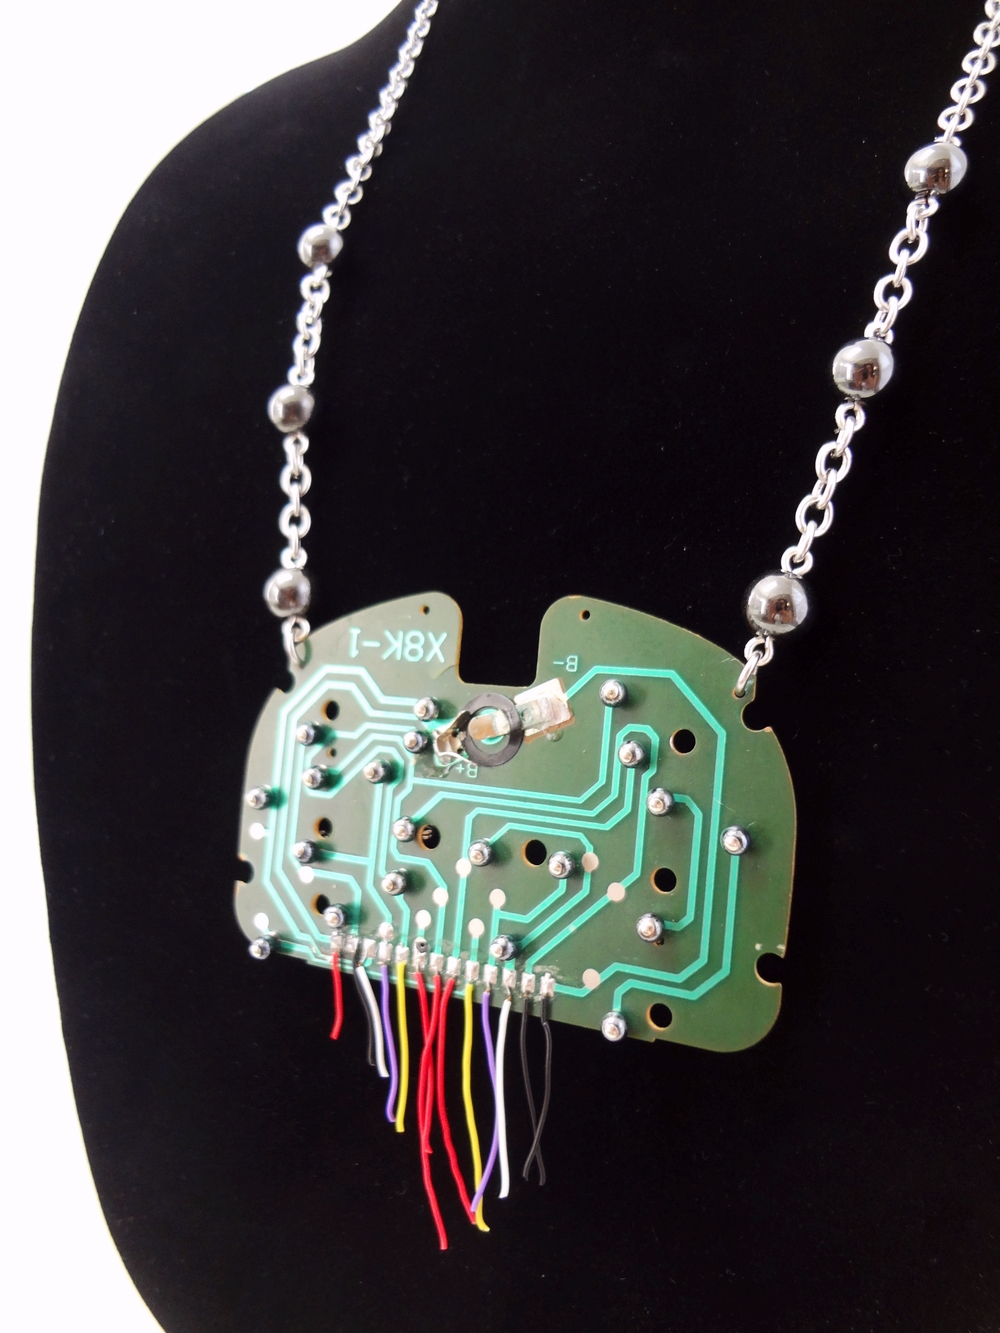 Circuit-Tree Necklace with steel, hematite beads and recycled circuit board